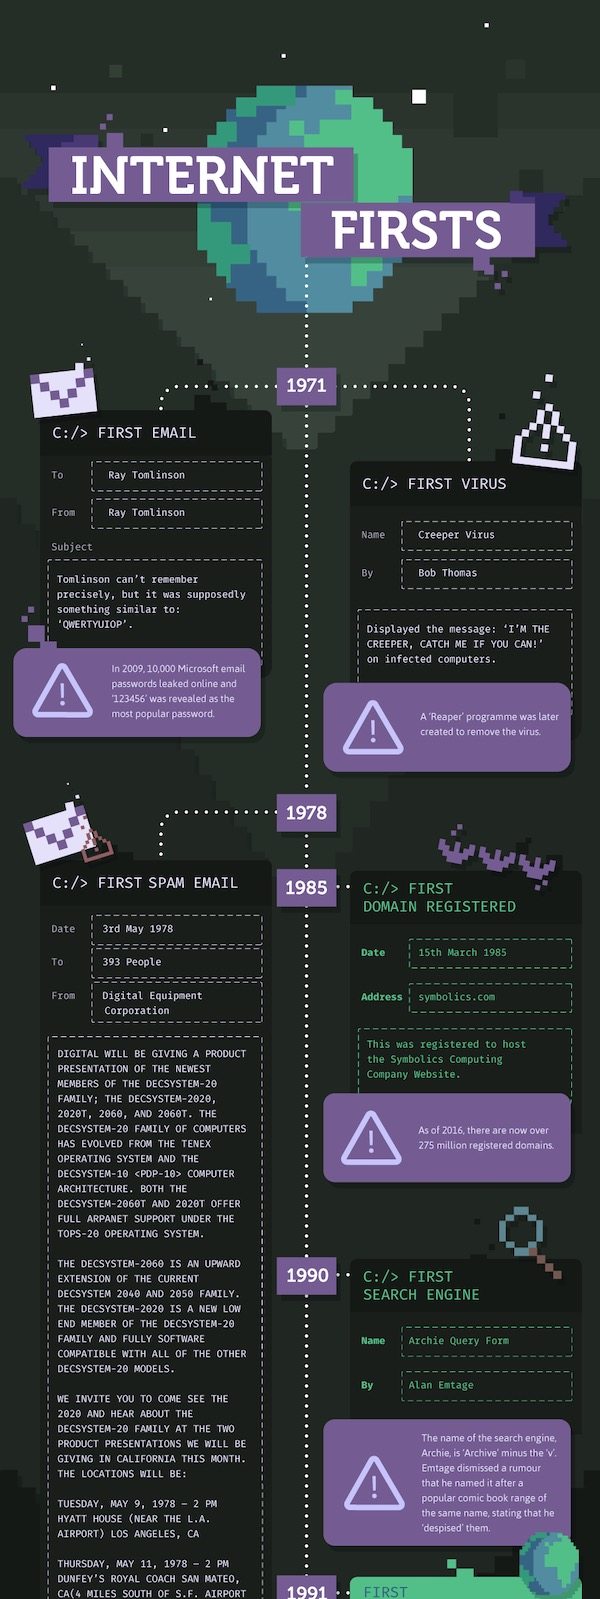 Internet Firsts Timeline Infographic